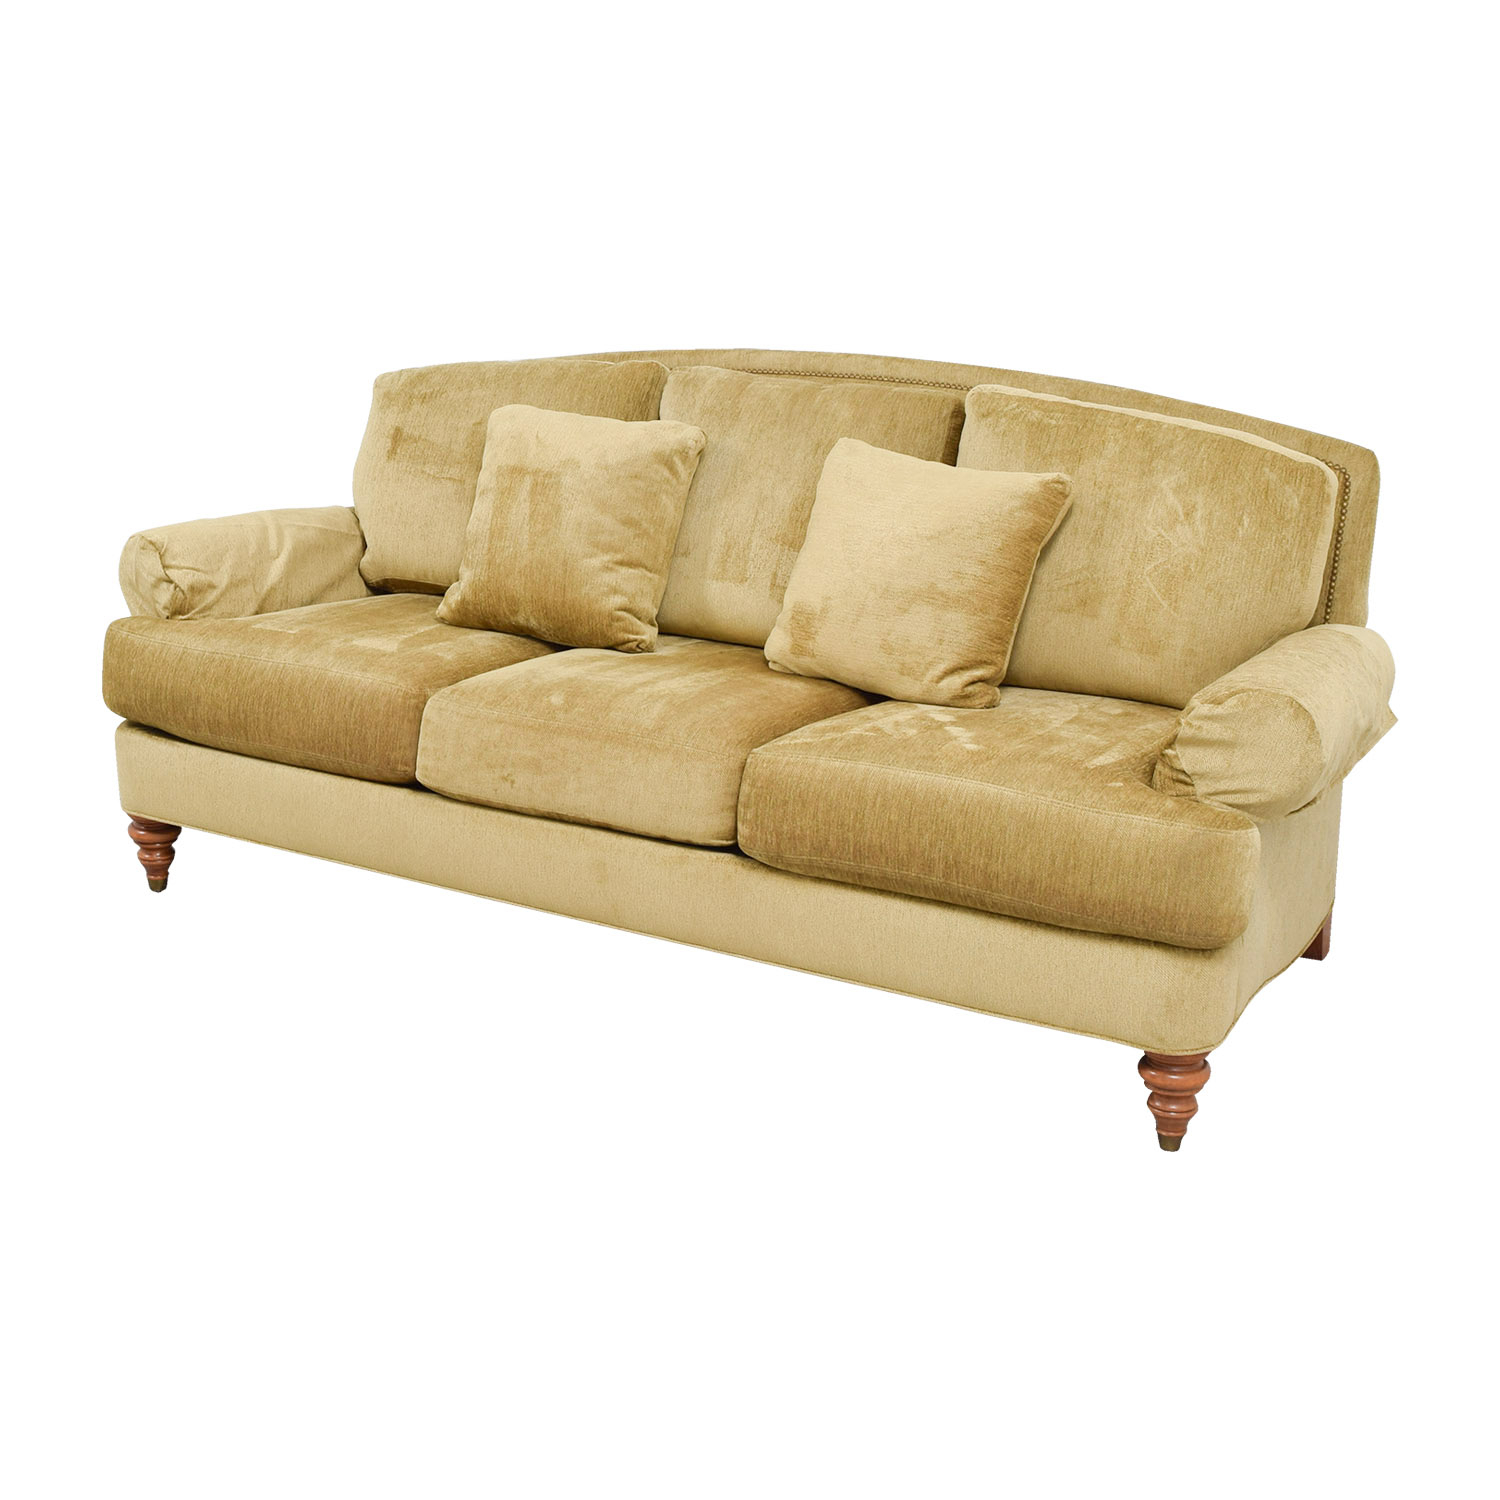 90% Off – Ethan Allen Ethan Allen Hyde Gold Three Cushion Throughout Ethan Allen Sofas And Chairs (View 2 of 15)